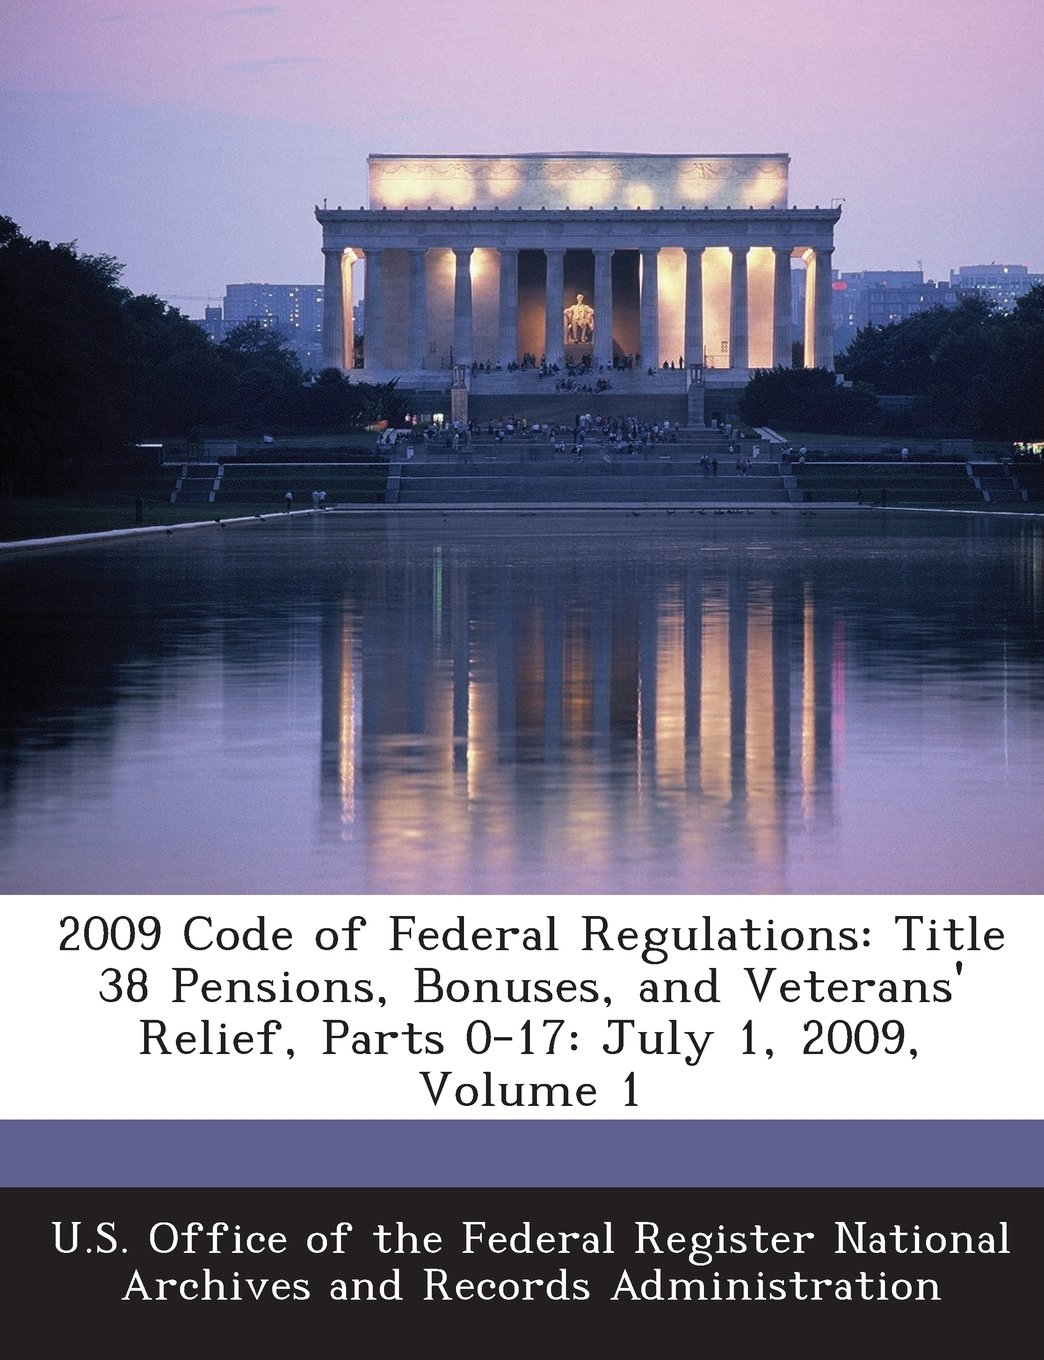 2009 Code of Federal Regulations: Title 38 Pensions, Bonuses, and Veterans' Relief, Parts 0-17: July 1, 2009, Volume 1 ebook